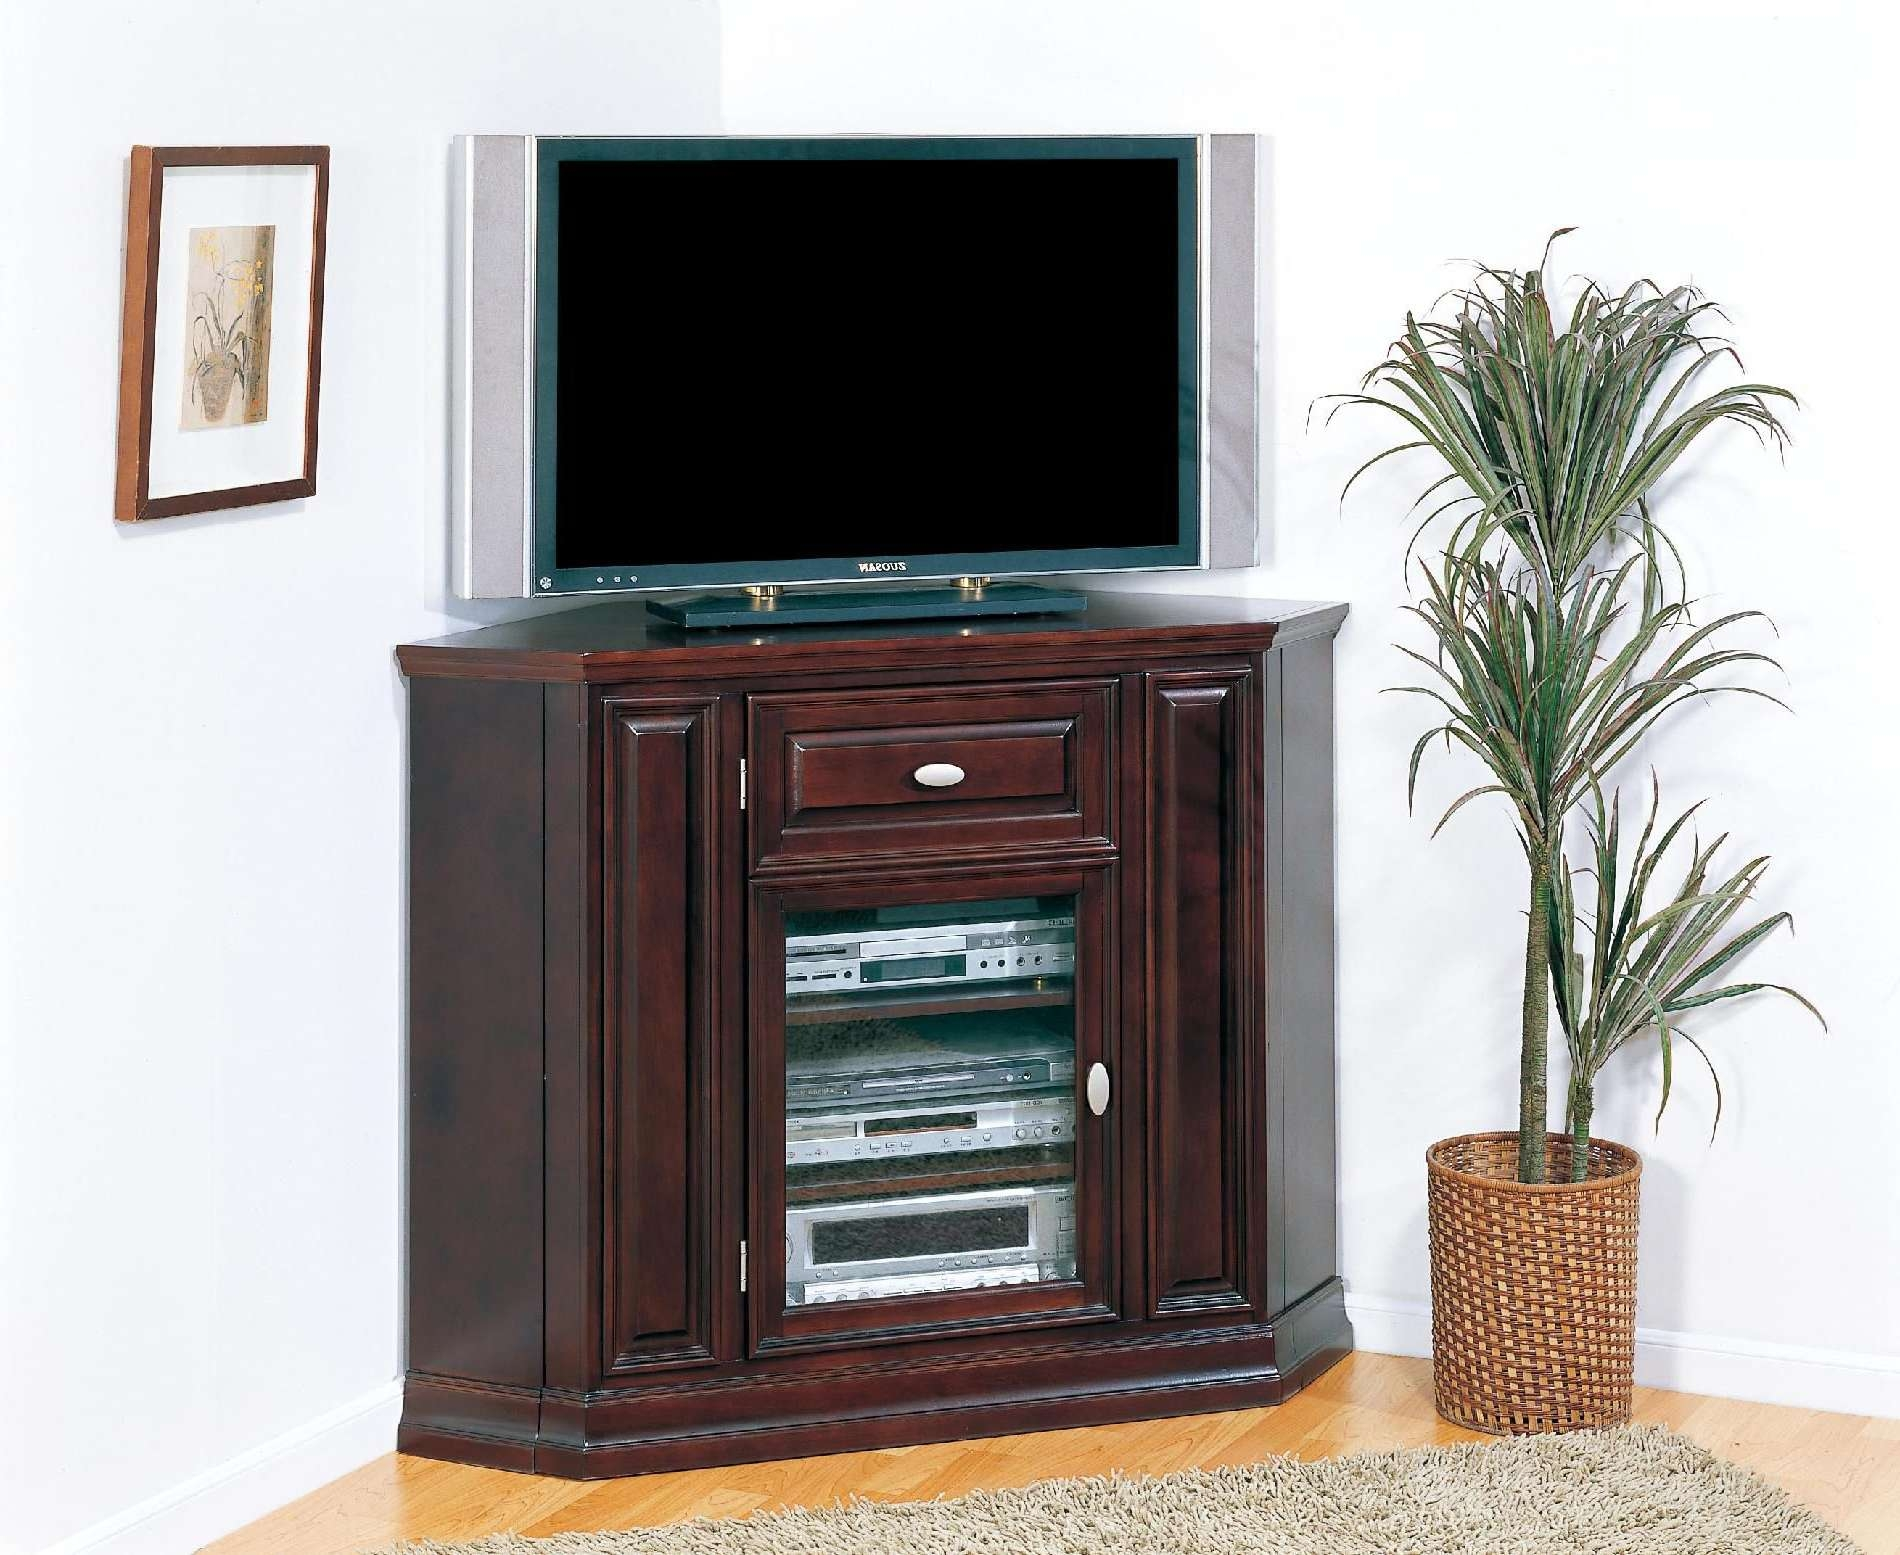 Tall Corner Tv Cabinet With Glass And Wood Doors Plus Drawer Of Within Corner Tv Cabinets With Glass Doors (View 13 of 20)